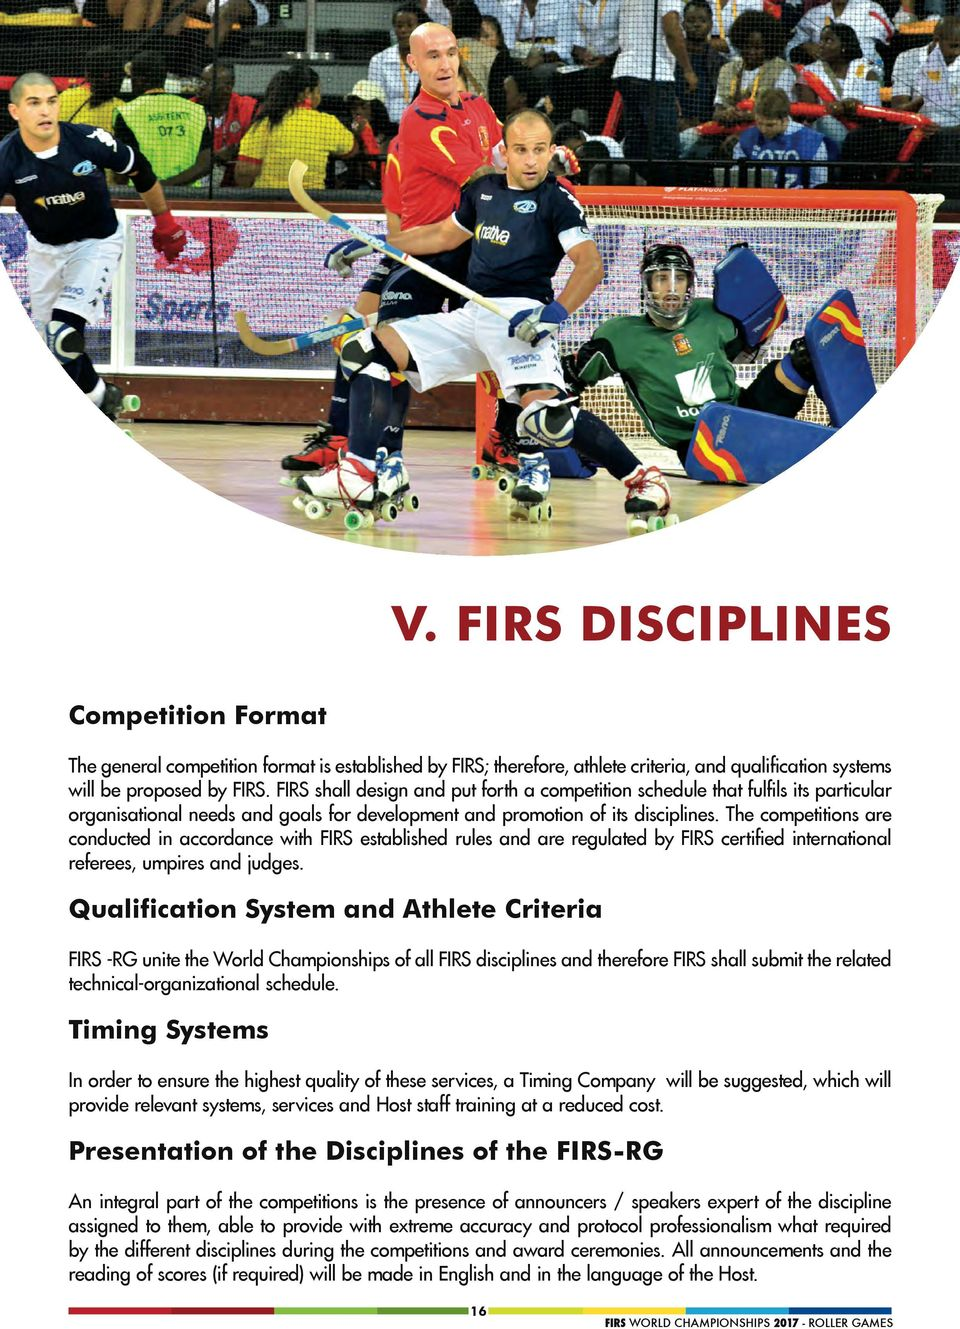 The competitions are conducted in accordance with FIRS established rules and are regulated by FIRS certified international referees, umpires and judges.